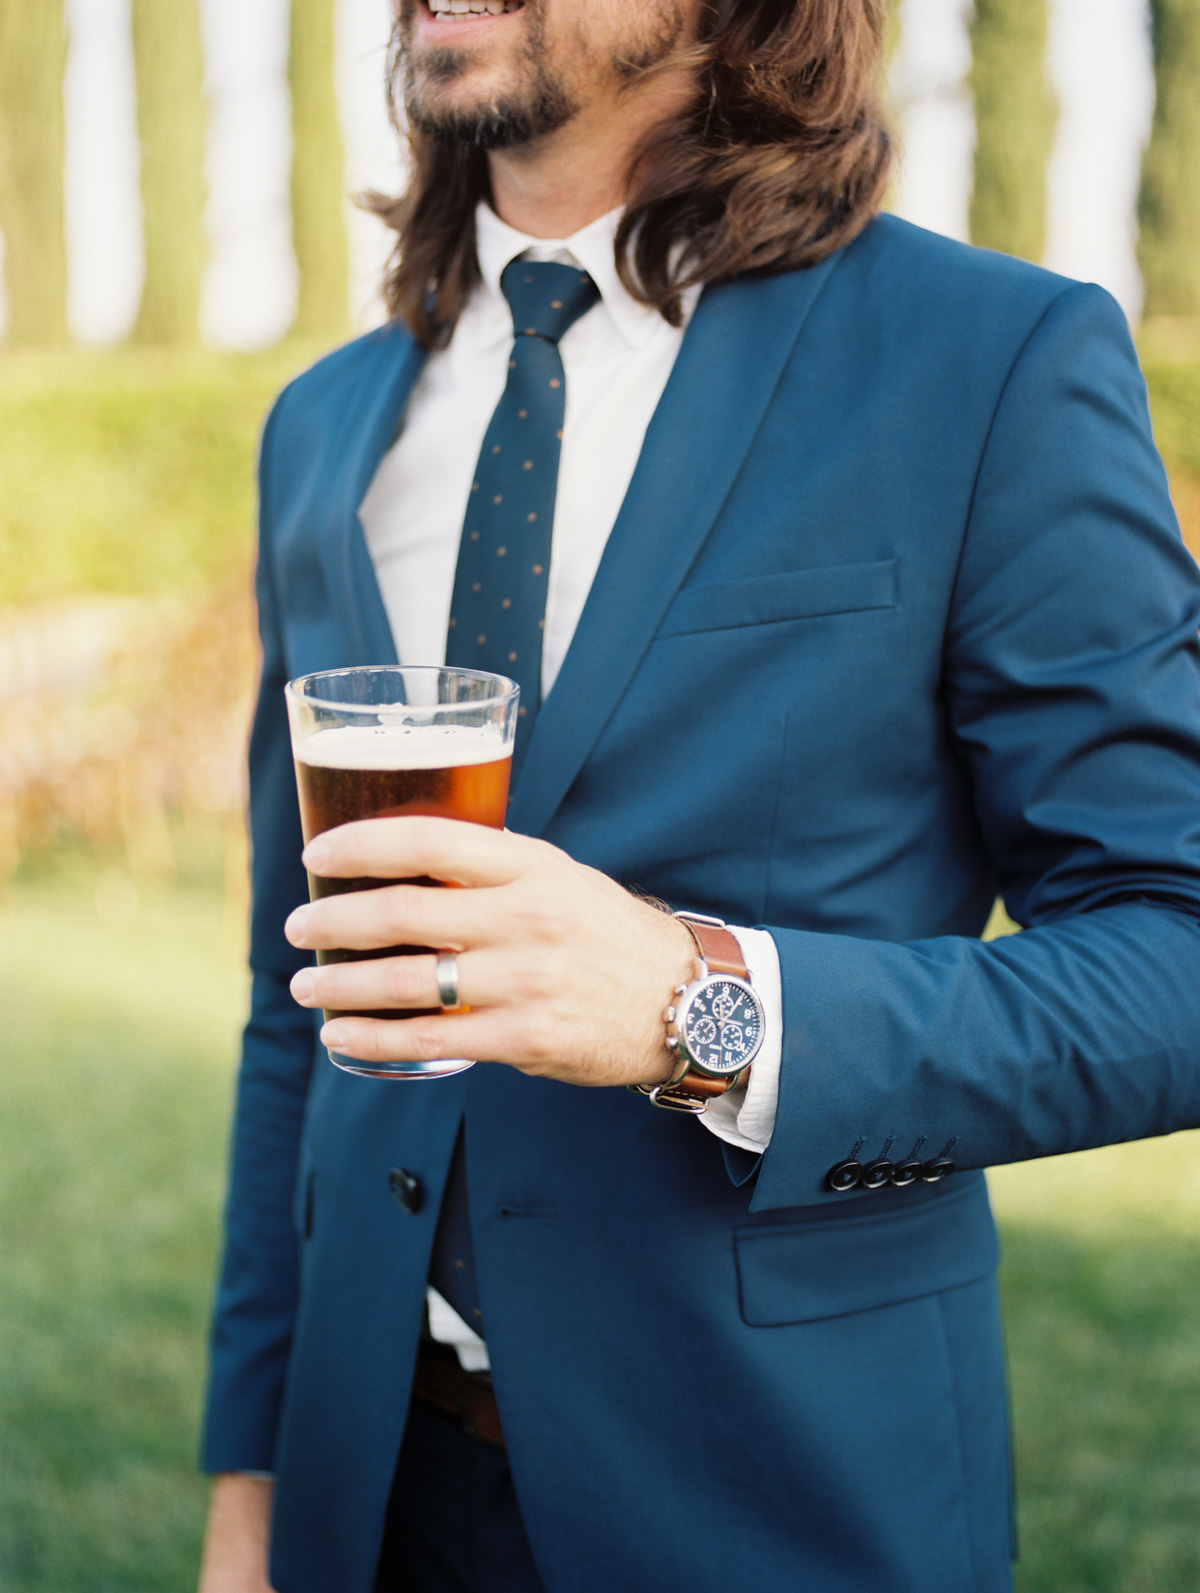 Craft beer drinker at Harrison & Jocelyne's gorgeous Temecula wedding day at Wiens Family Cellars captured by Temecula wedding photographers Betsy & John